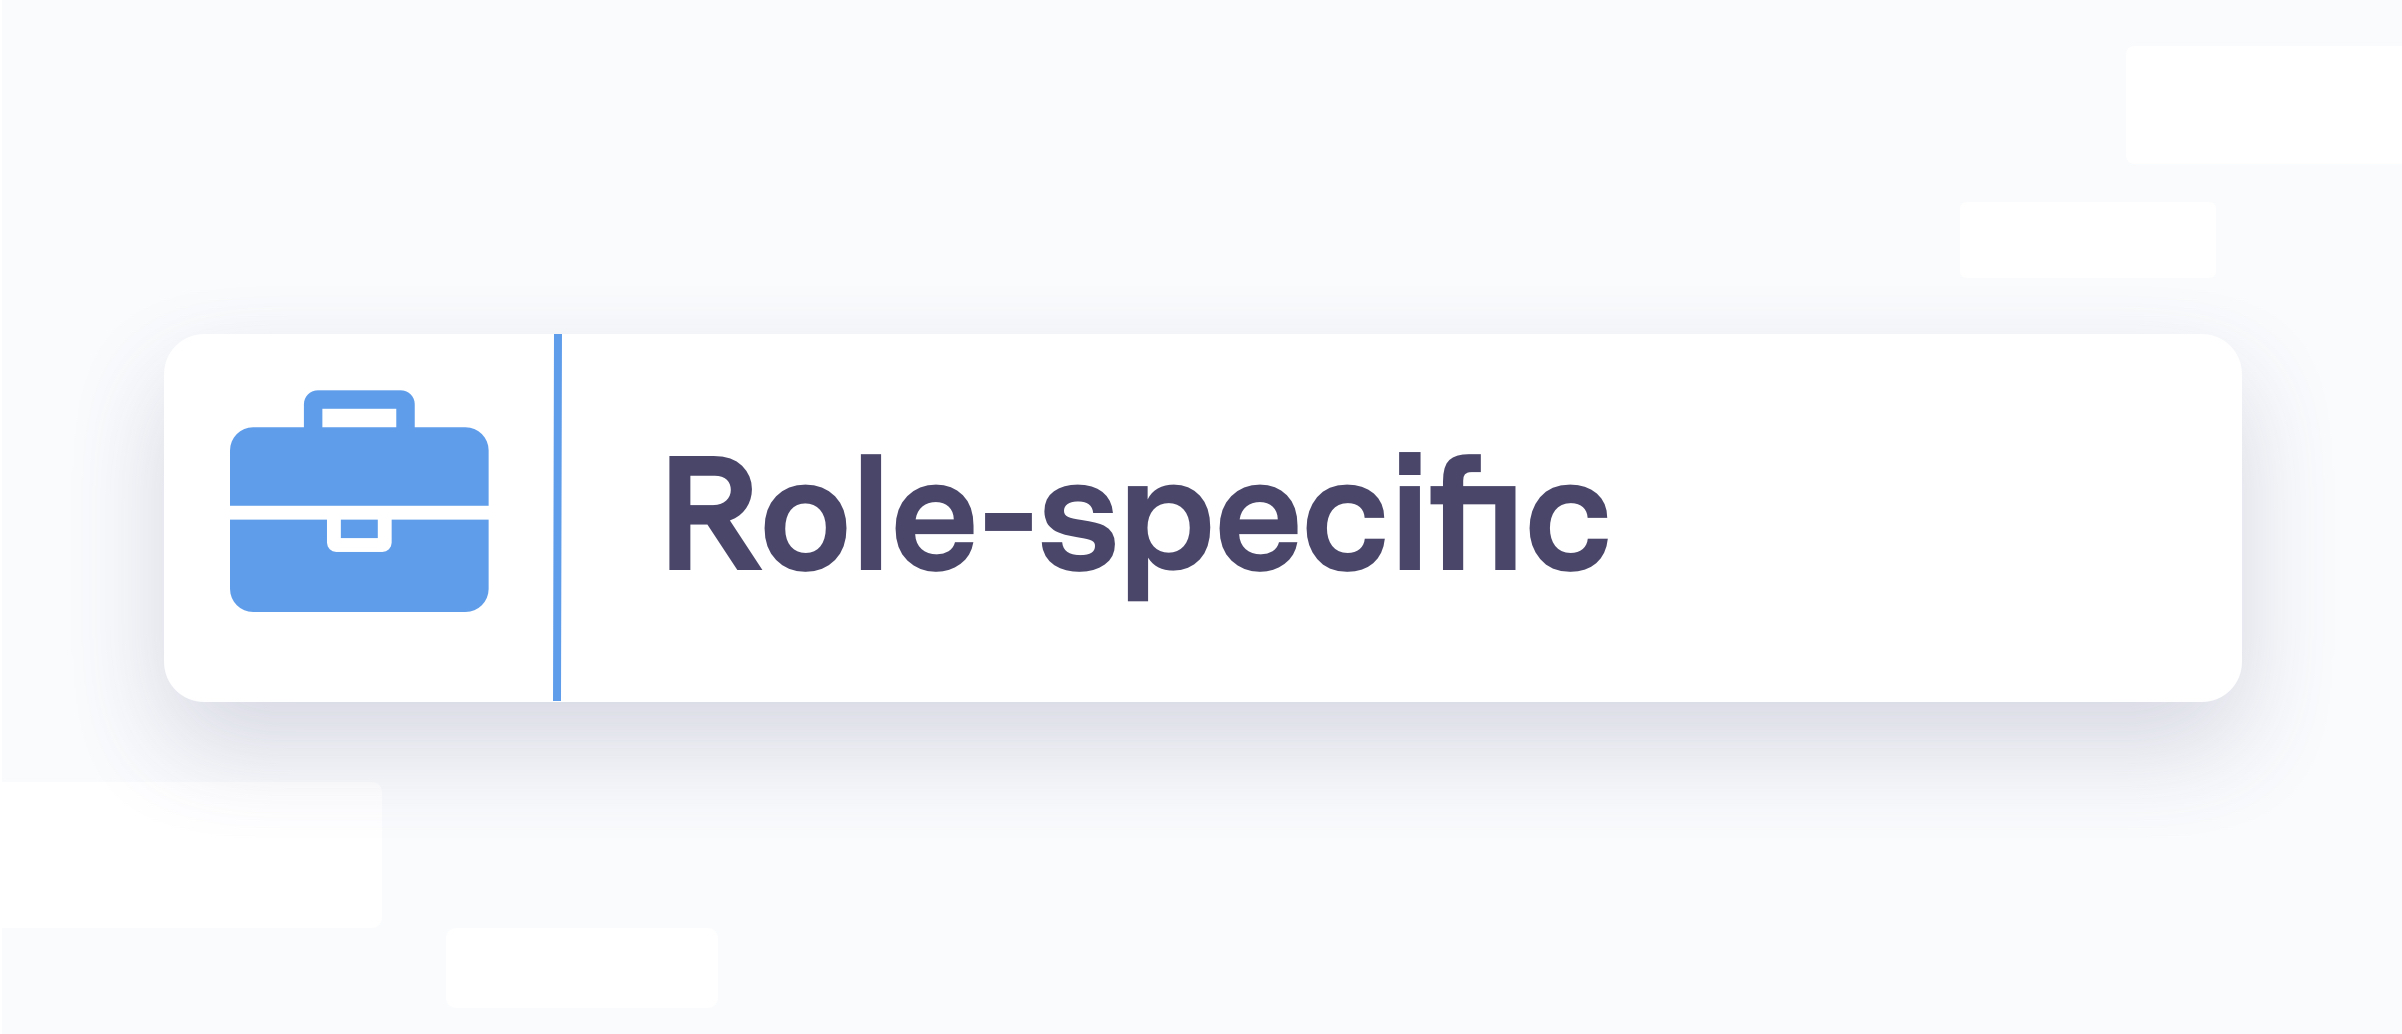 Role-specific section heading with blue briefcase icon